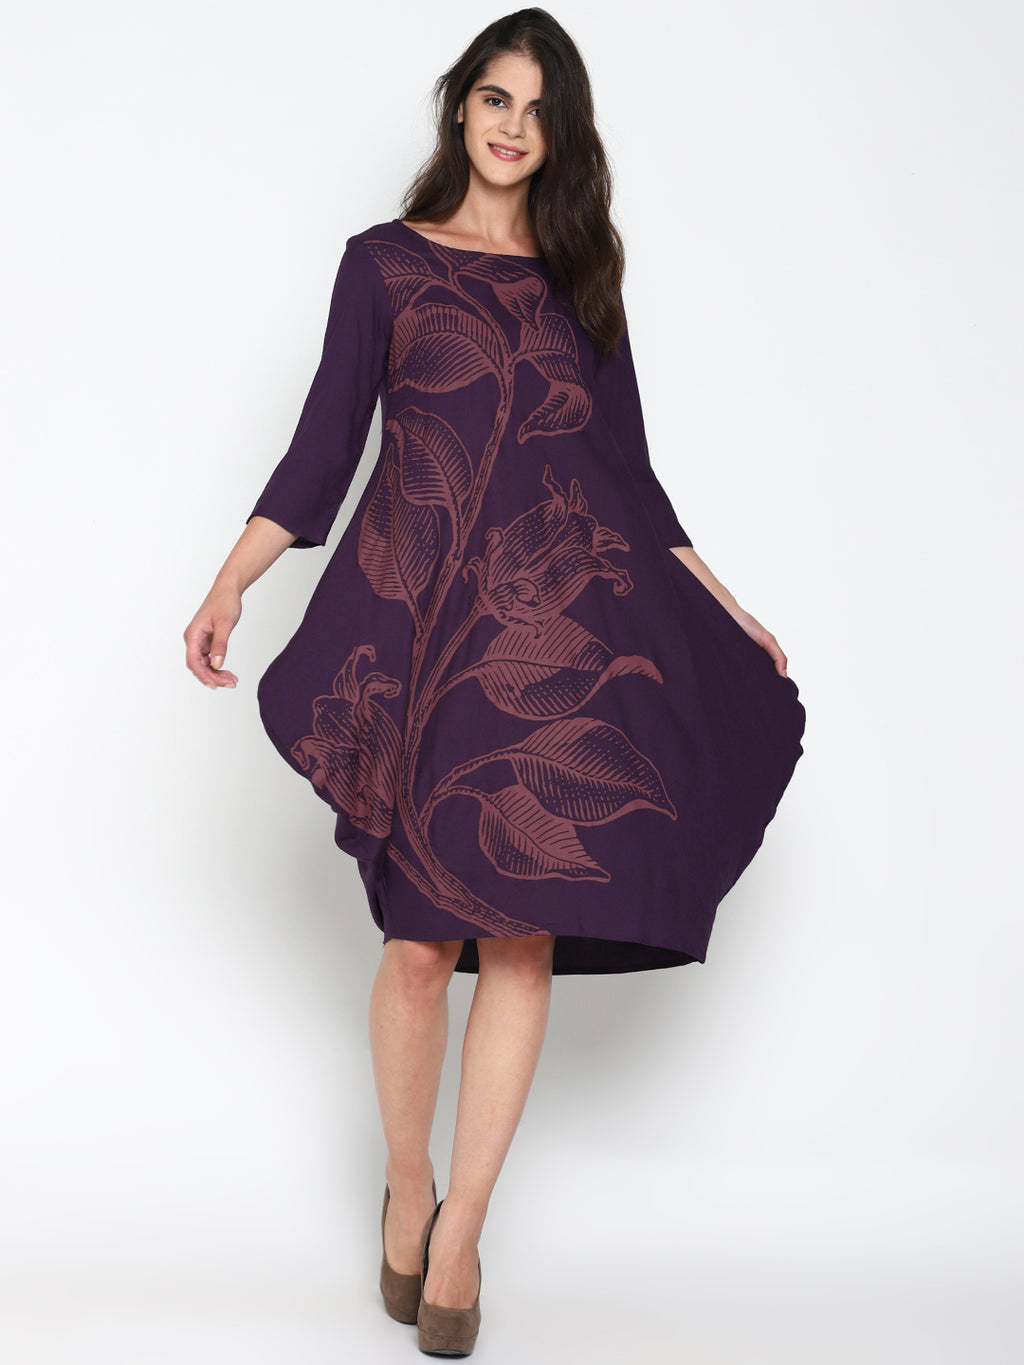 Dress with Floral Placement Print